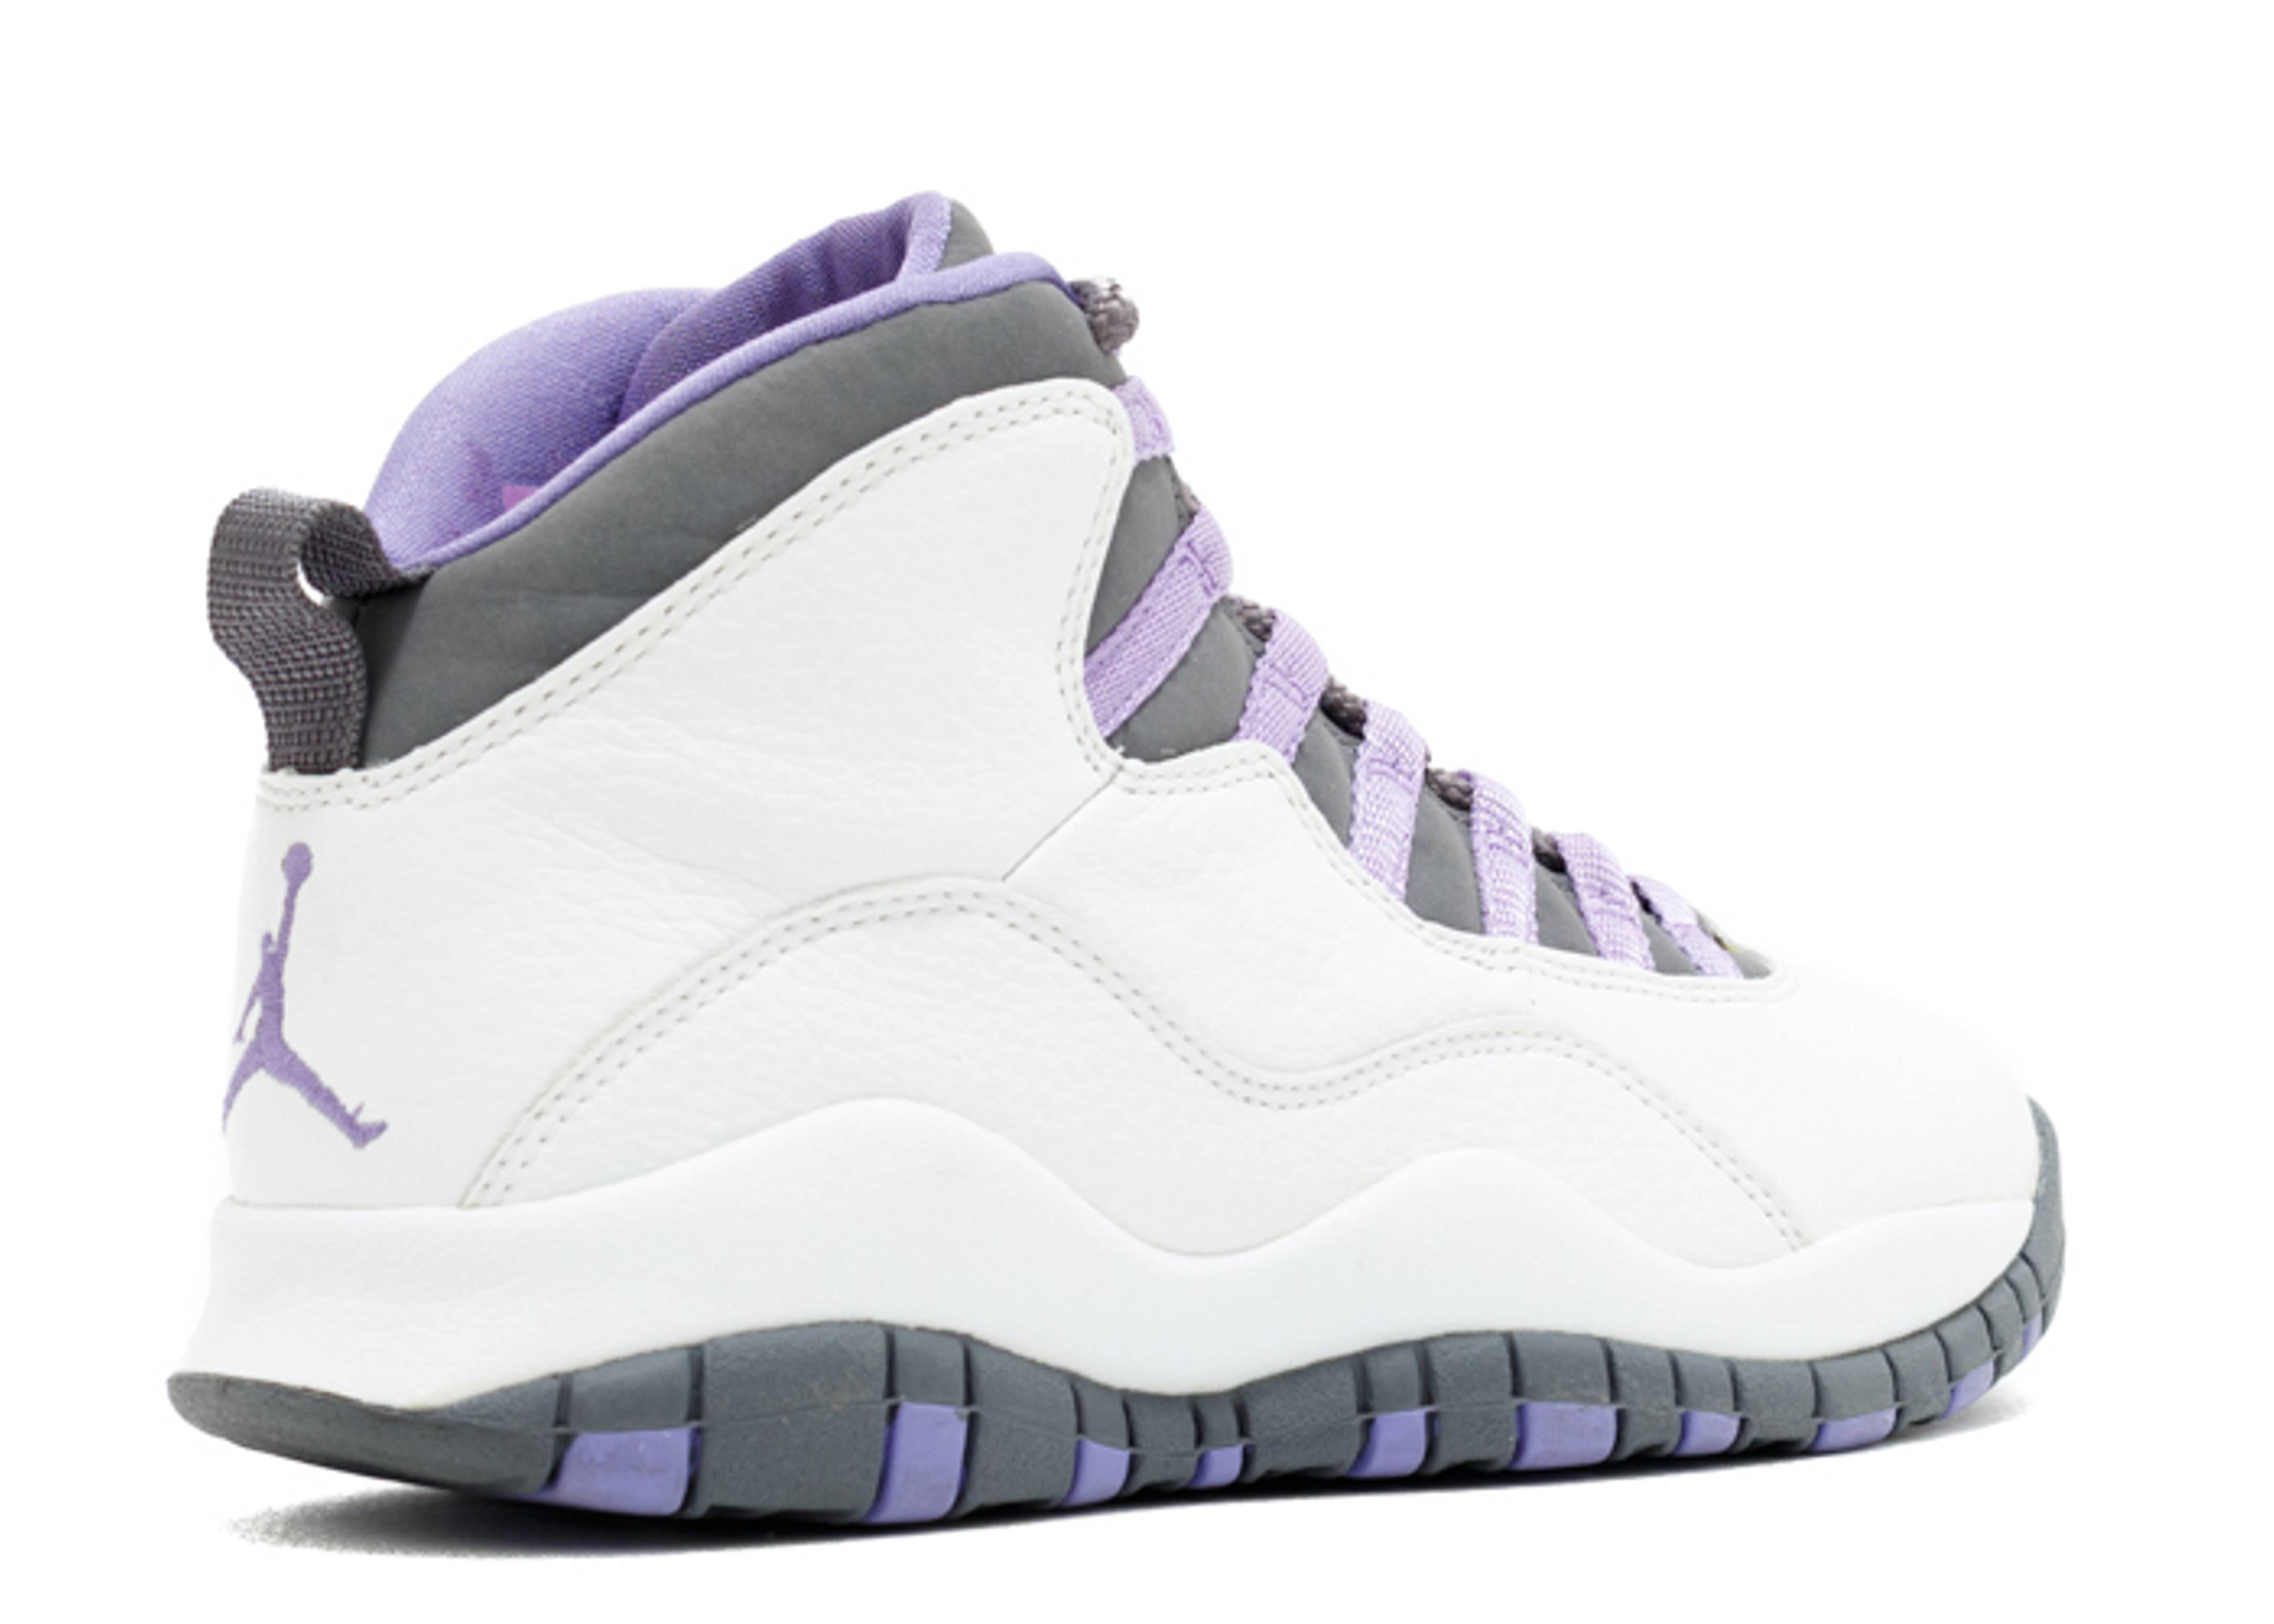 Air Jordan Retro 10 Violet Steel Grey  7cd4e4054